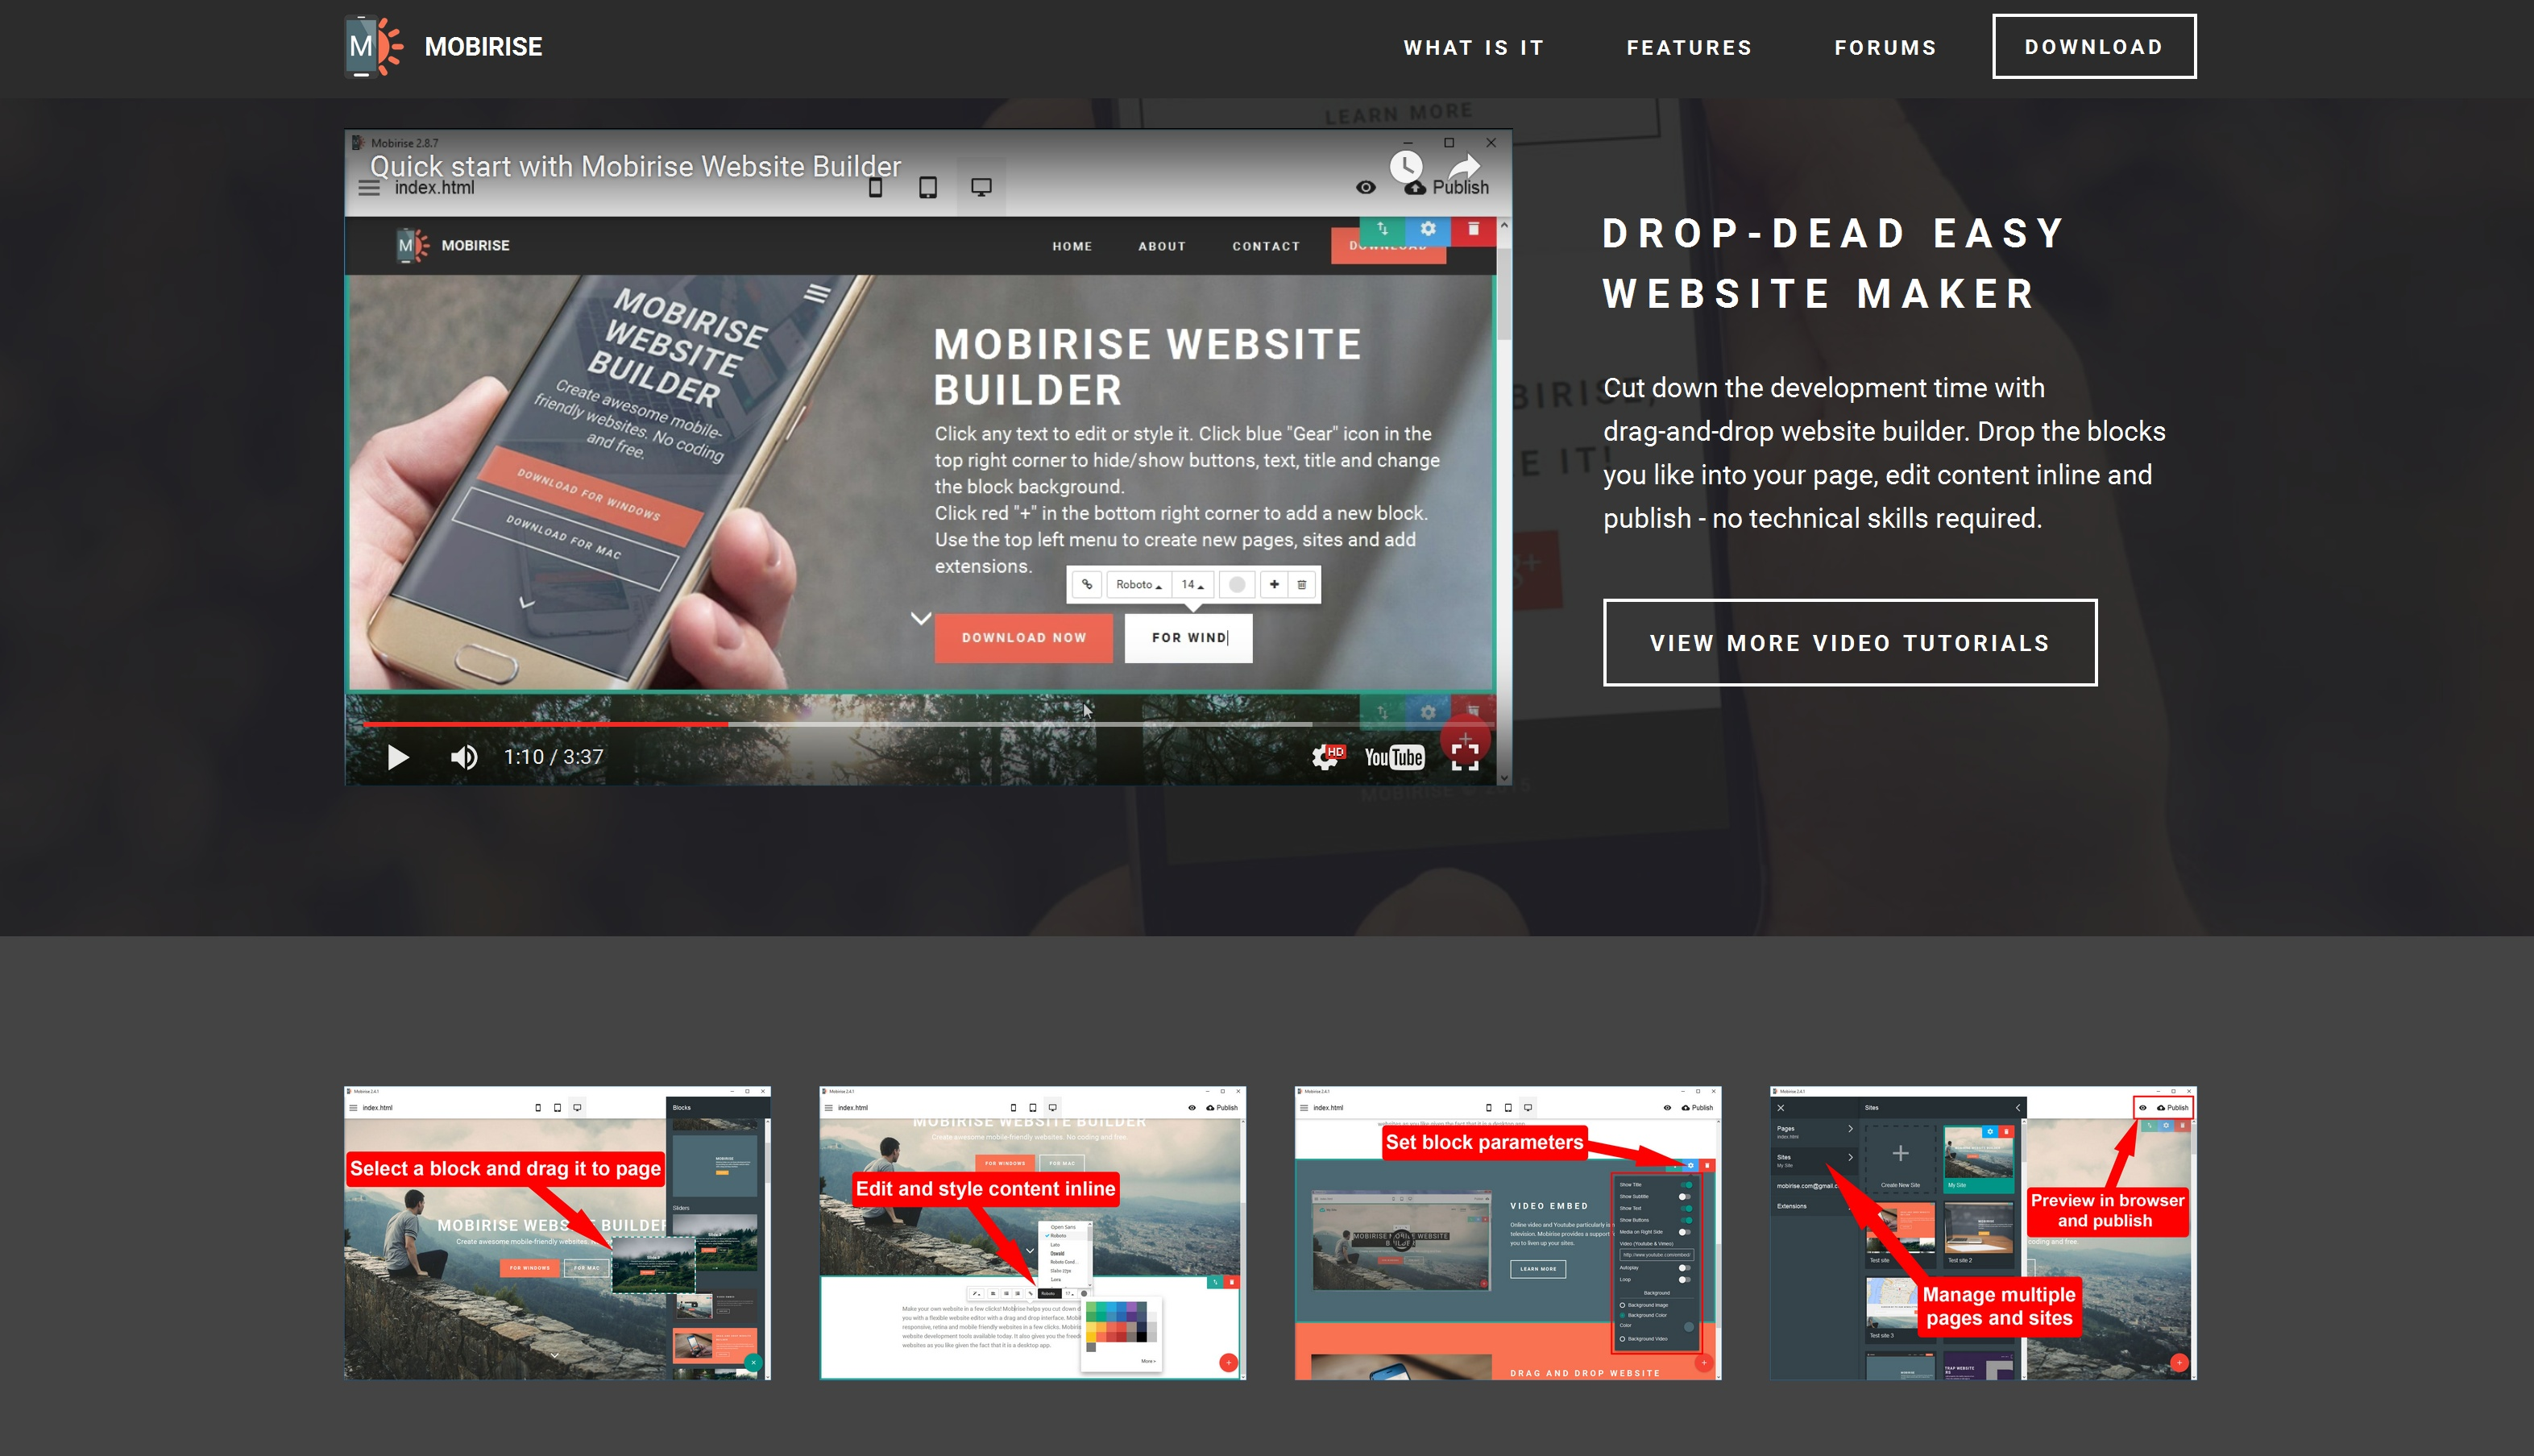 Mobile Website Builder Review